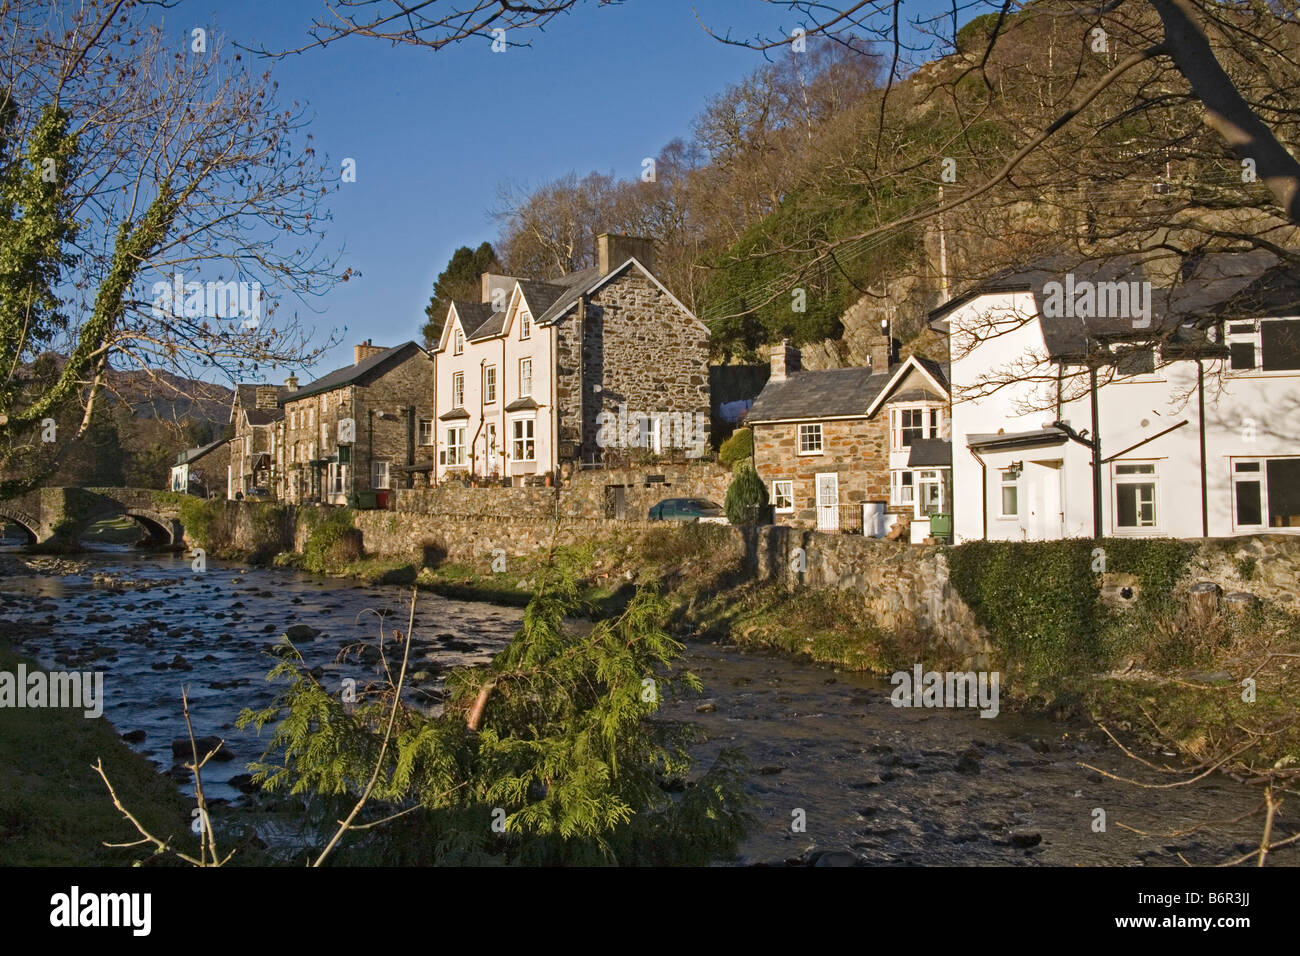 Beddgelert Gwynedd North Wales December The River Colwyn flows through the centre of this historic village - Stock Image